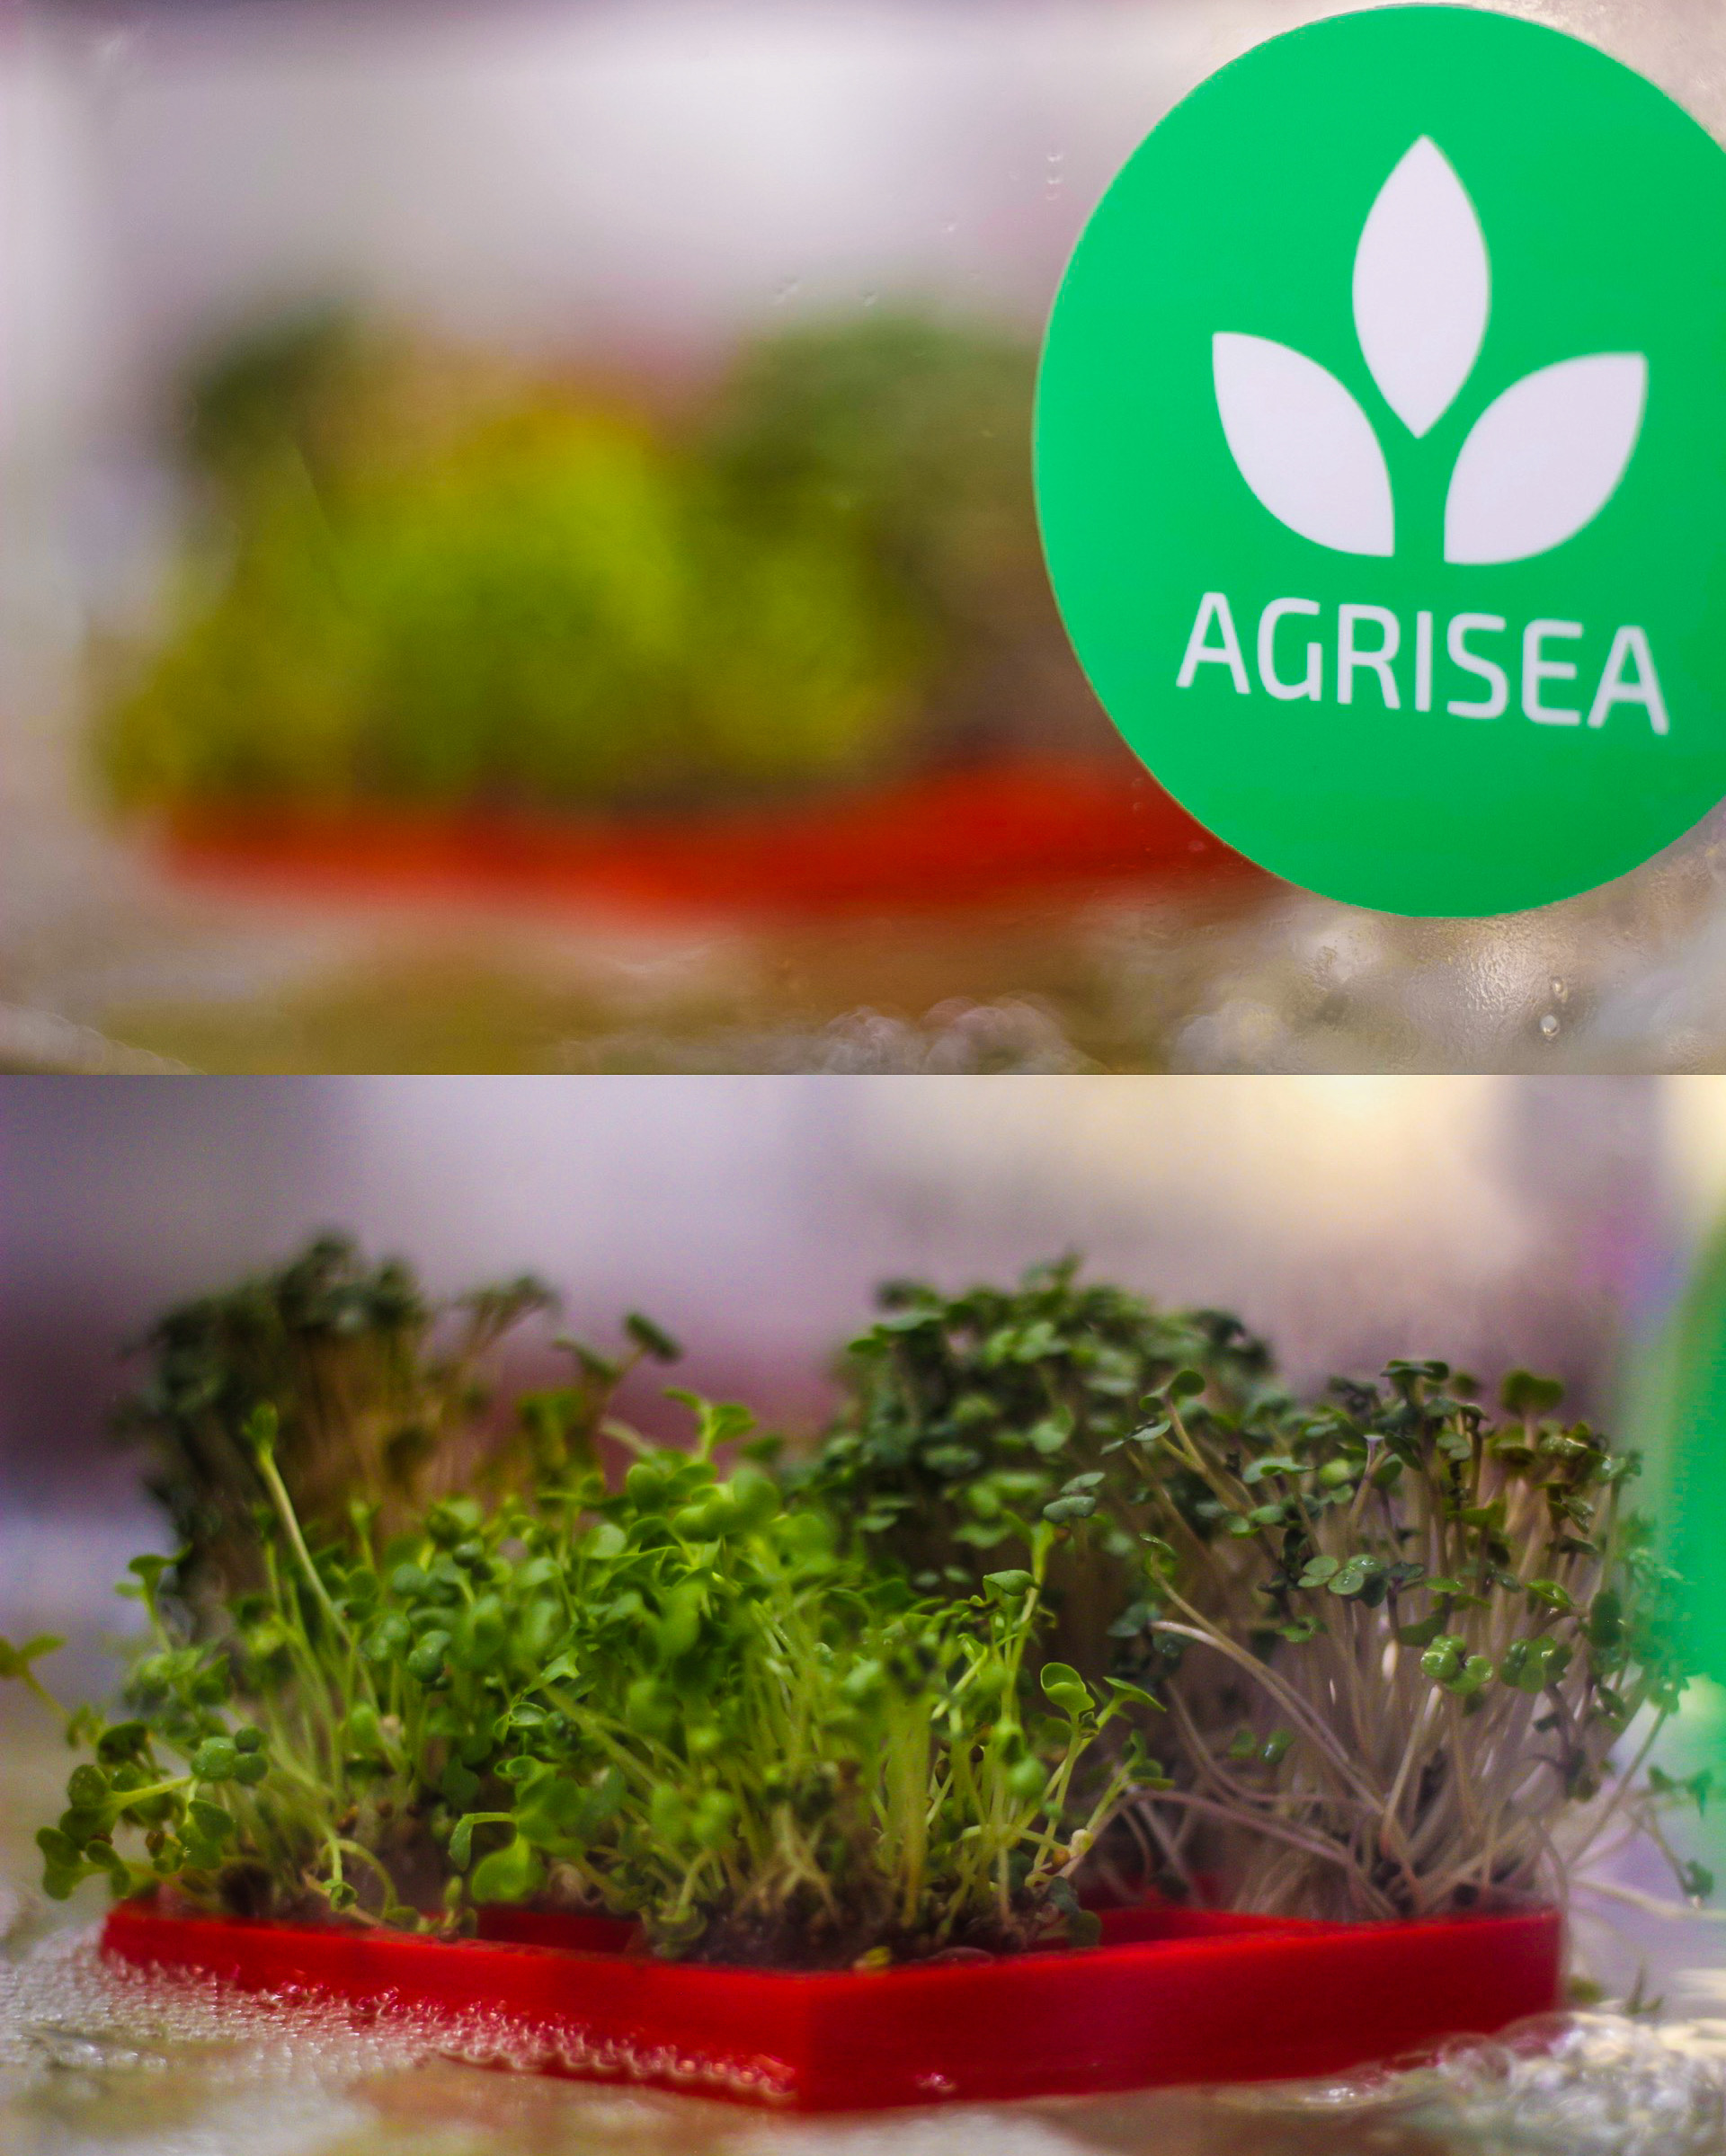 Agrisea's First Prototype Farm